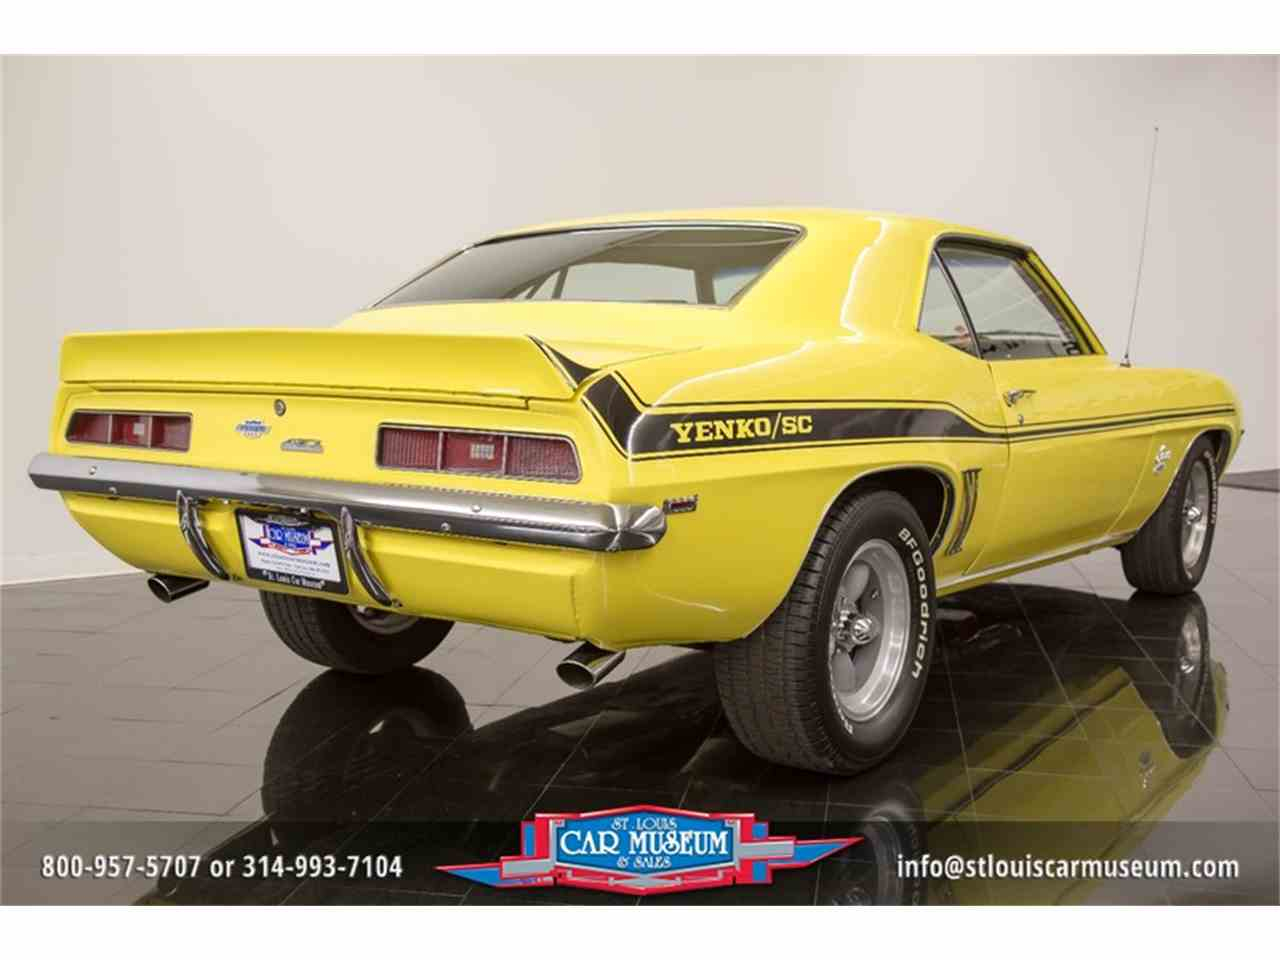 Large Picture of Classic '69 Chevrolet Camaro Yenko located in St. Louis Missouri - $39,900.00 - LTPE